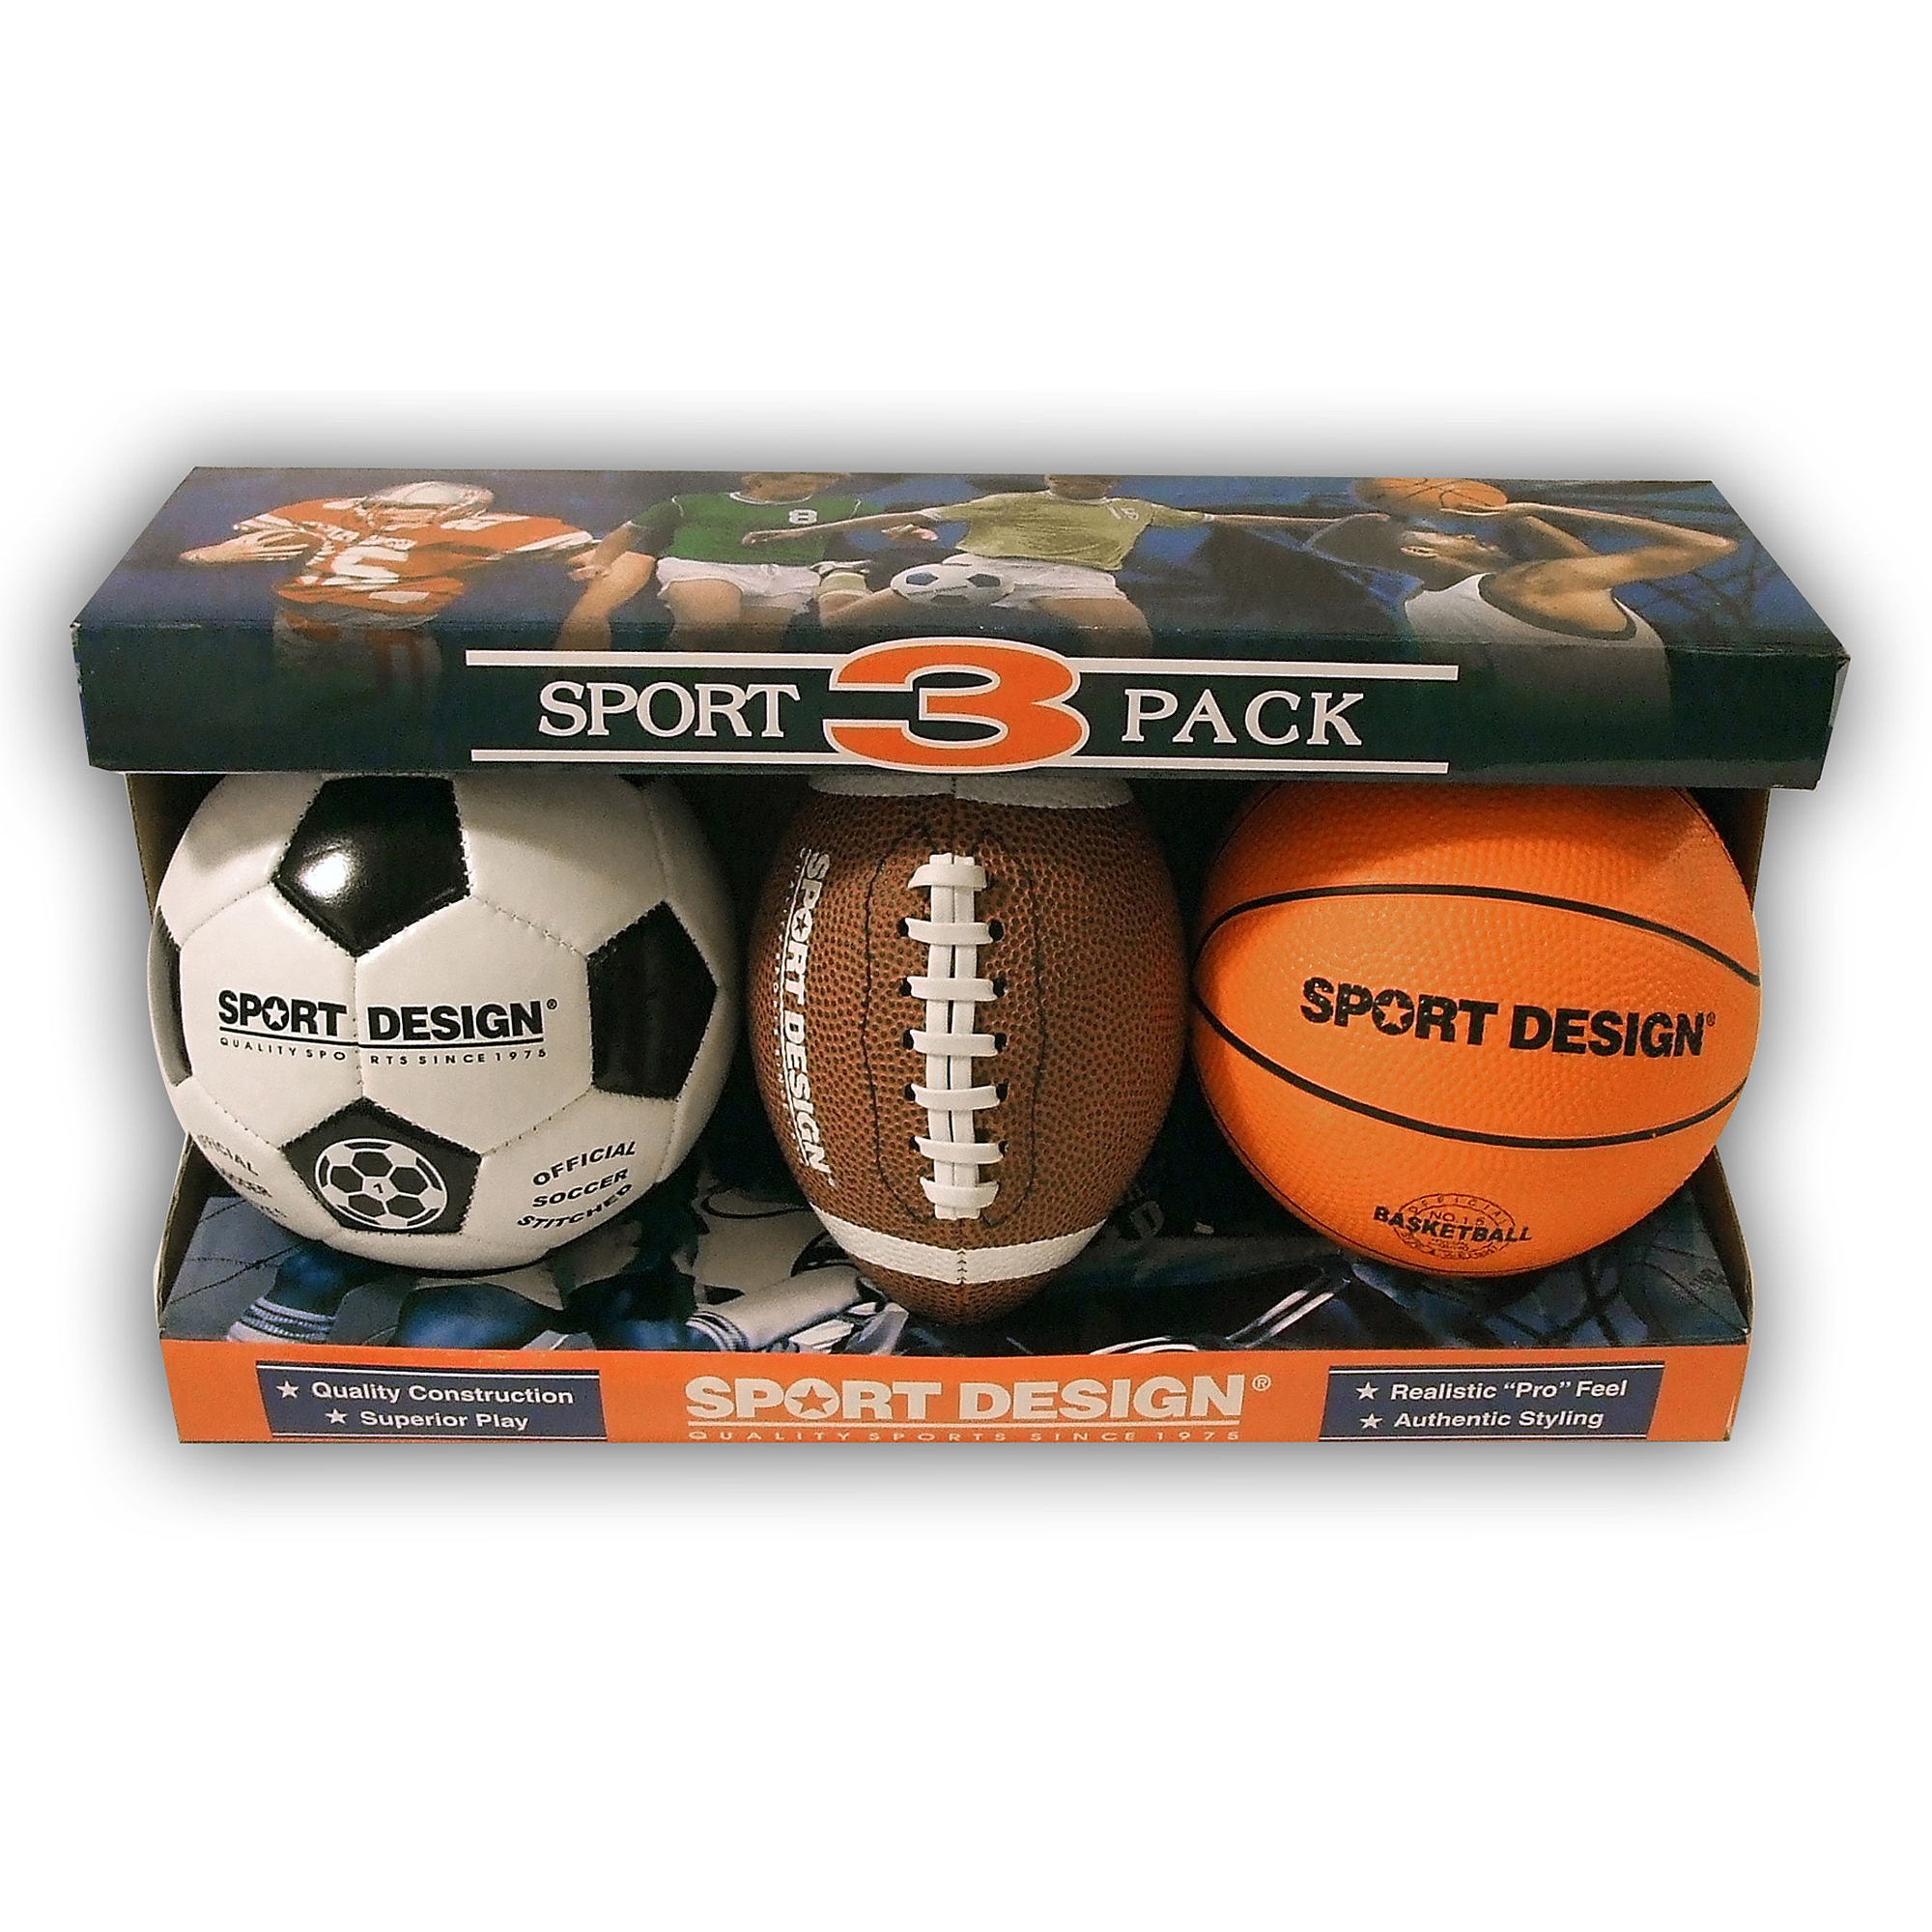 Sport Design Mini Ball Set, Soccer, Football and Basketball